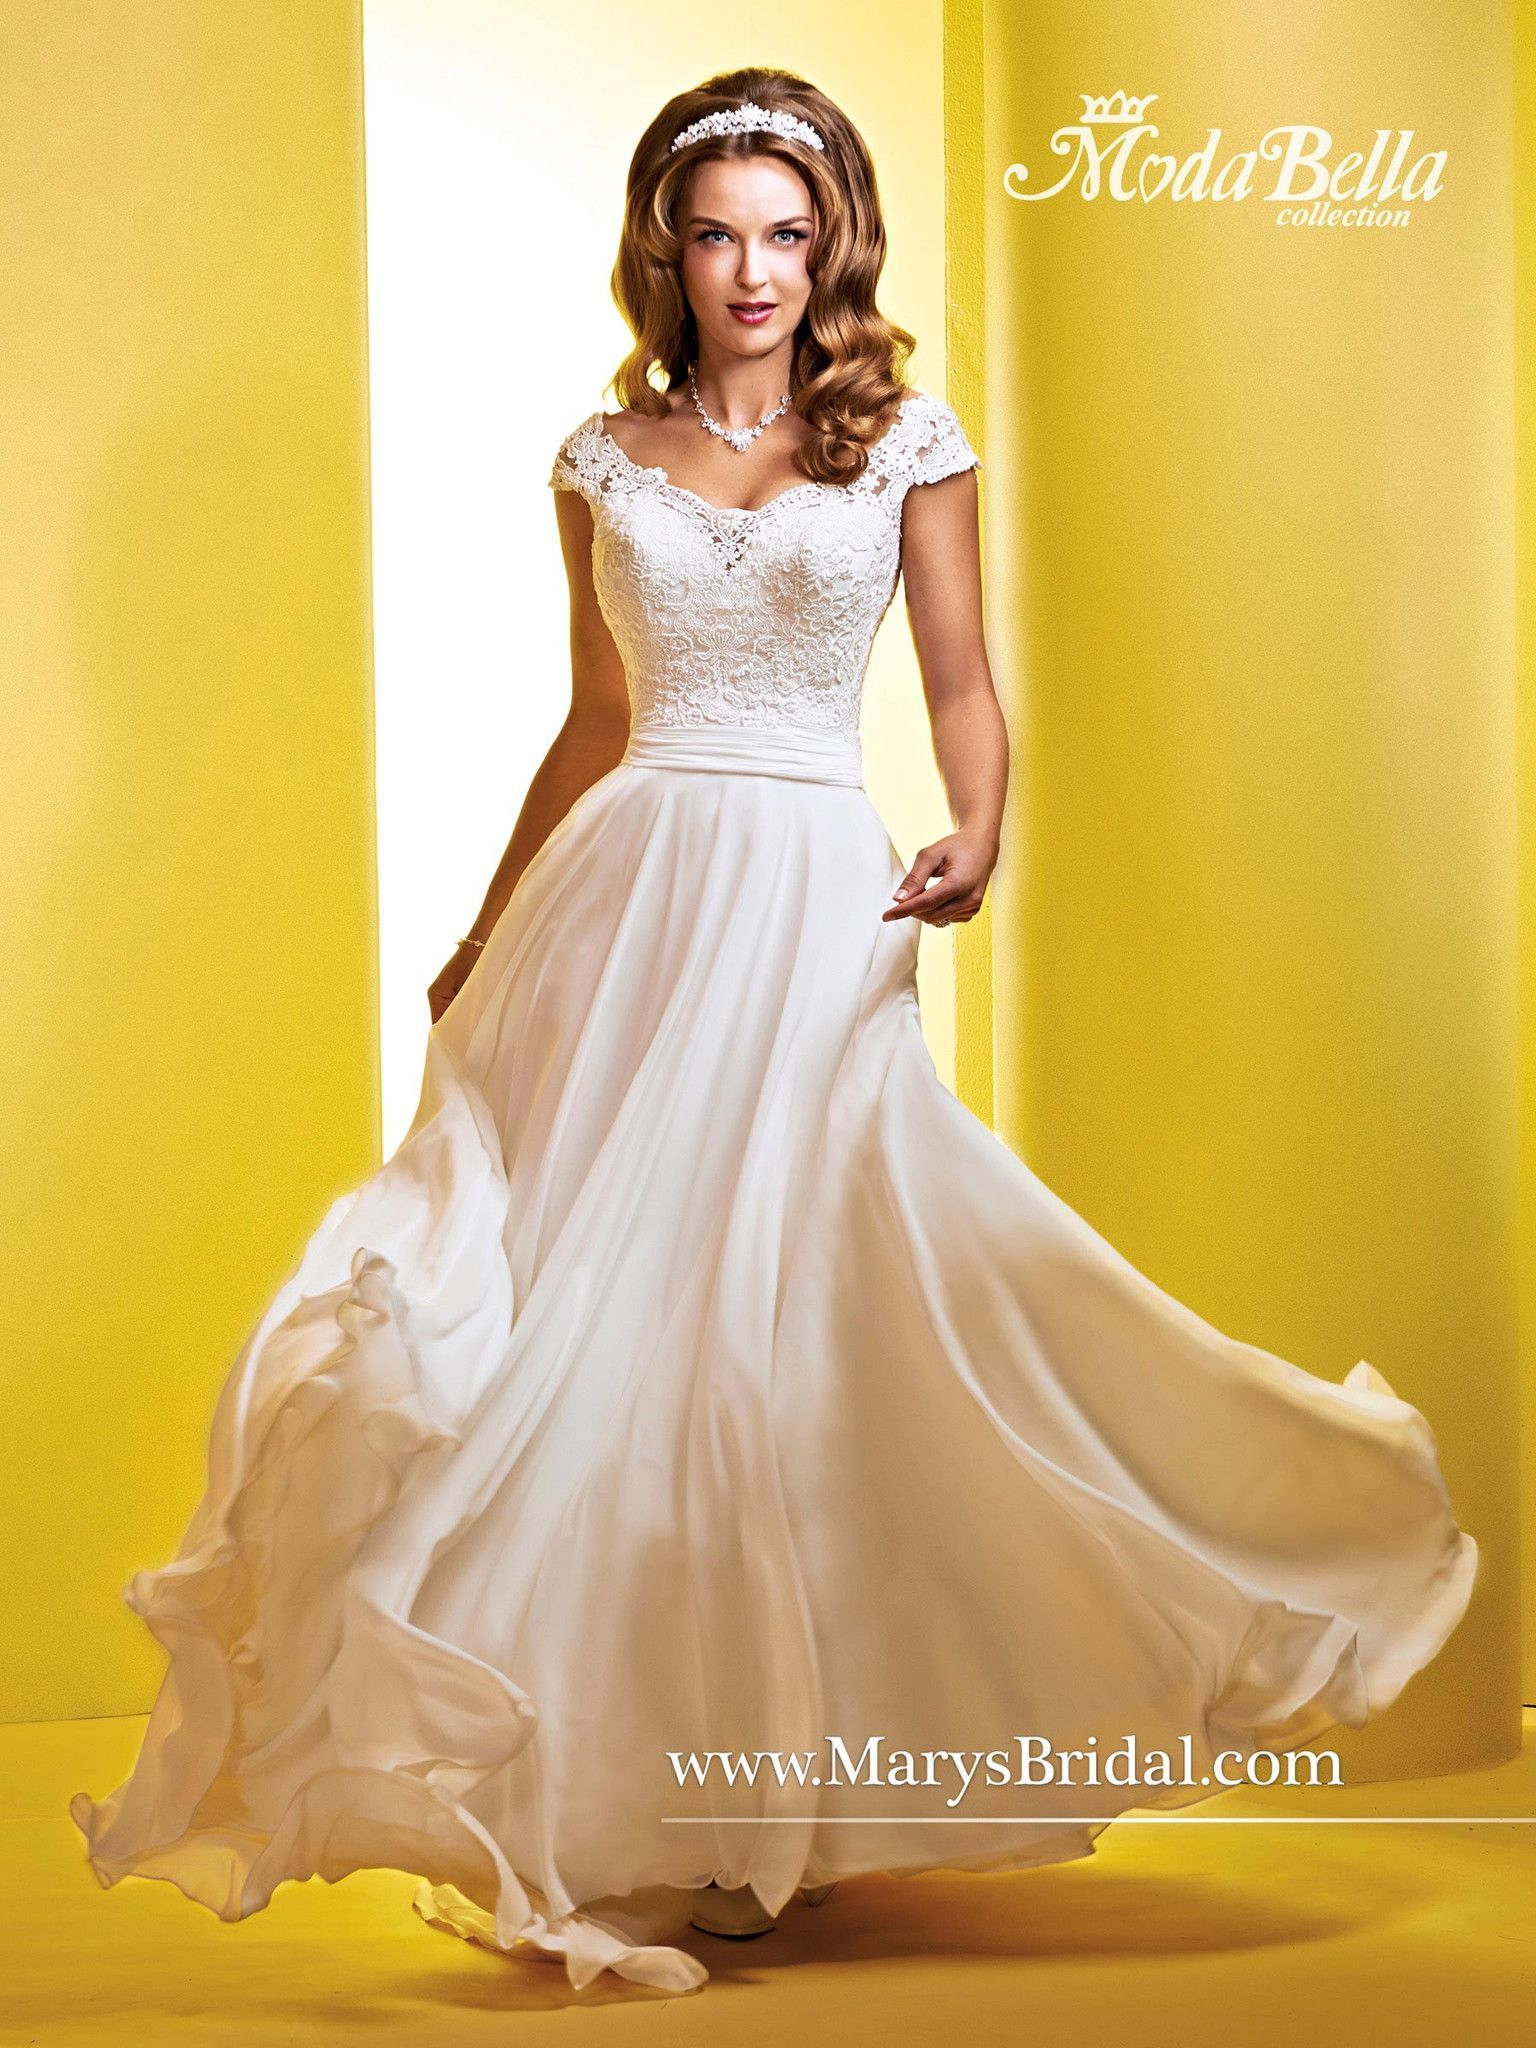 Most revealing wedding dresses ever  Lace u Chiffon Gown  Products  Pinterest  Lace chiffon and Products